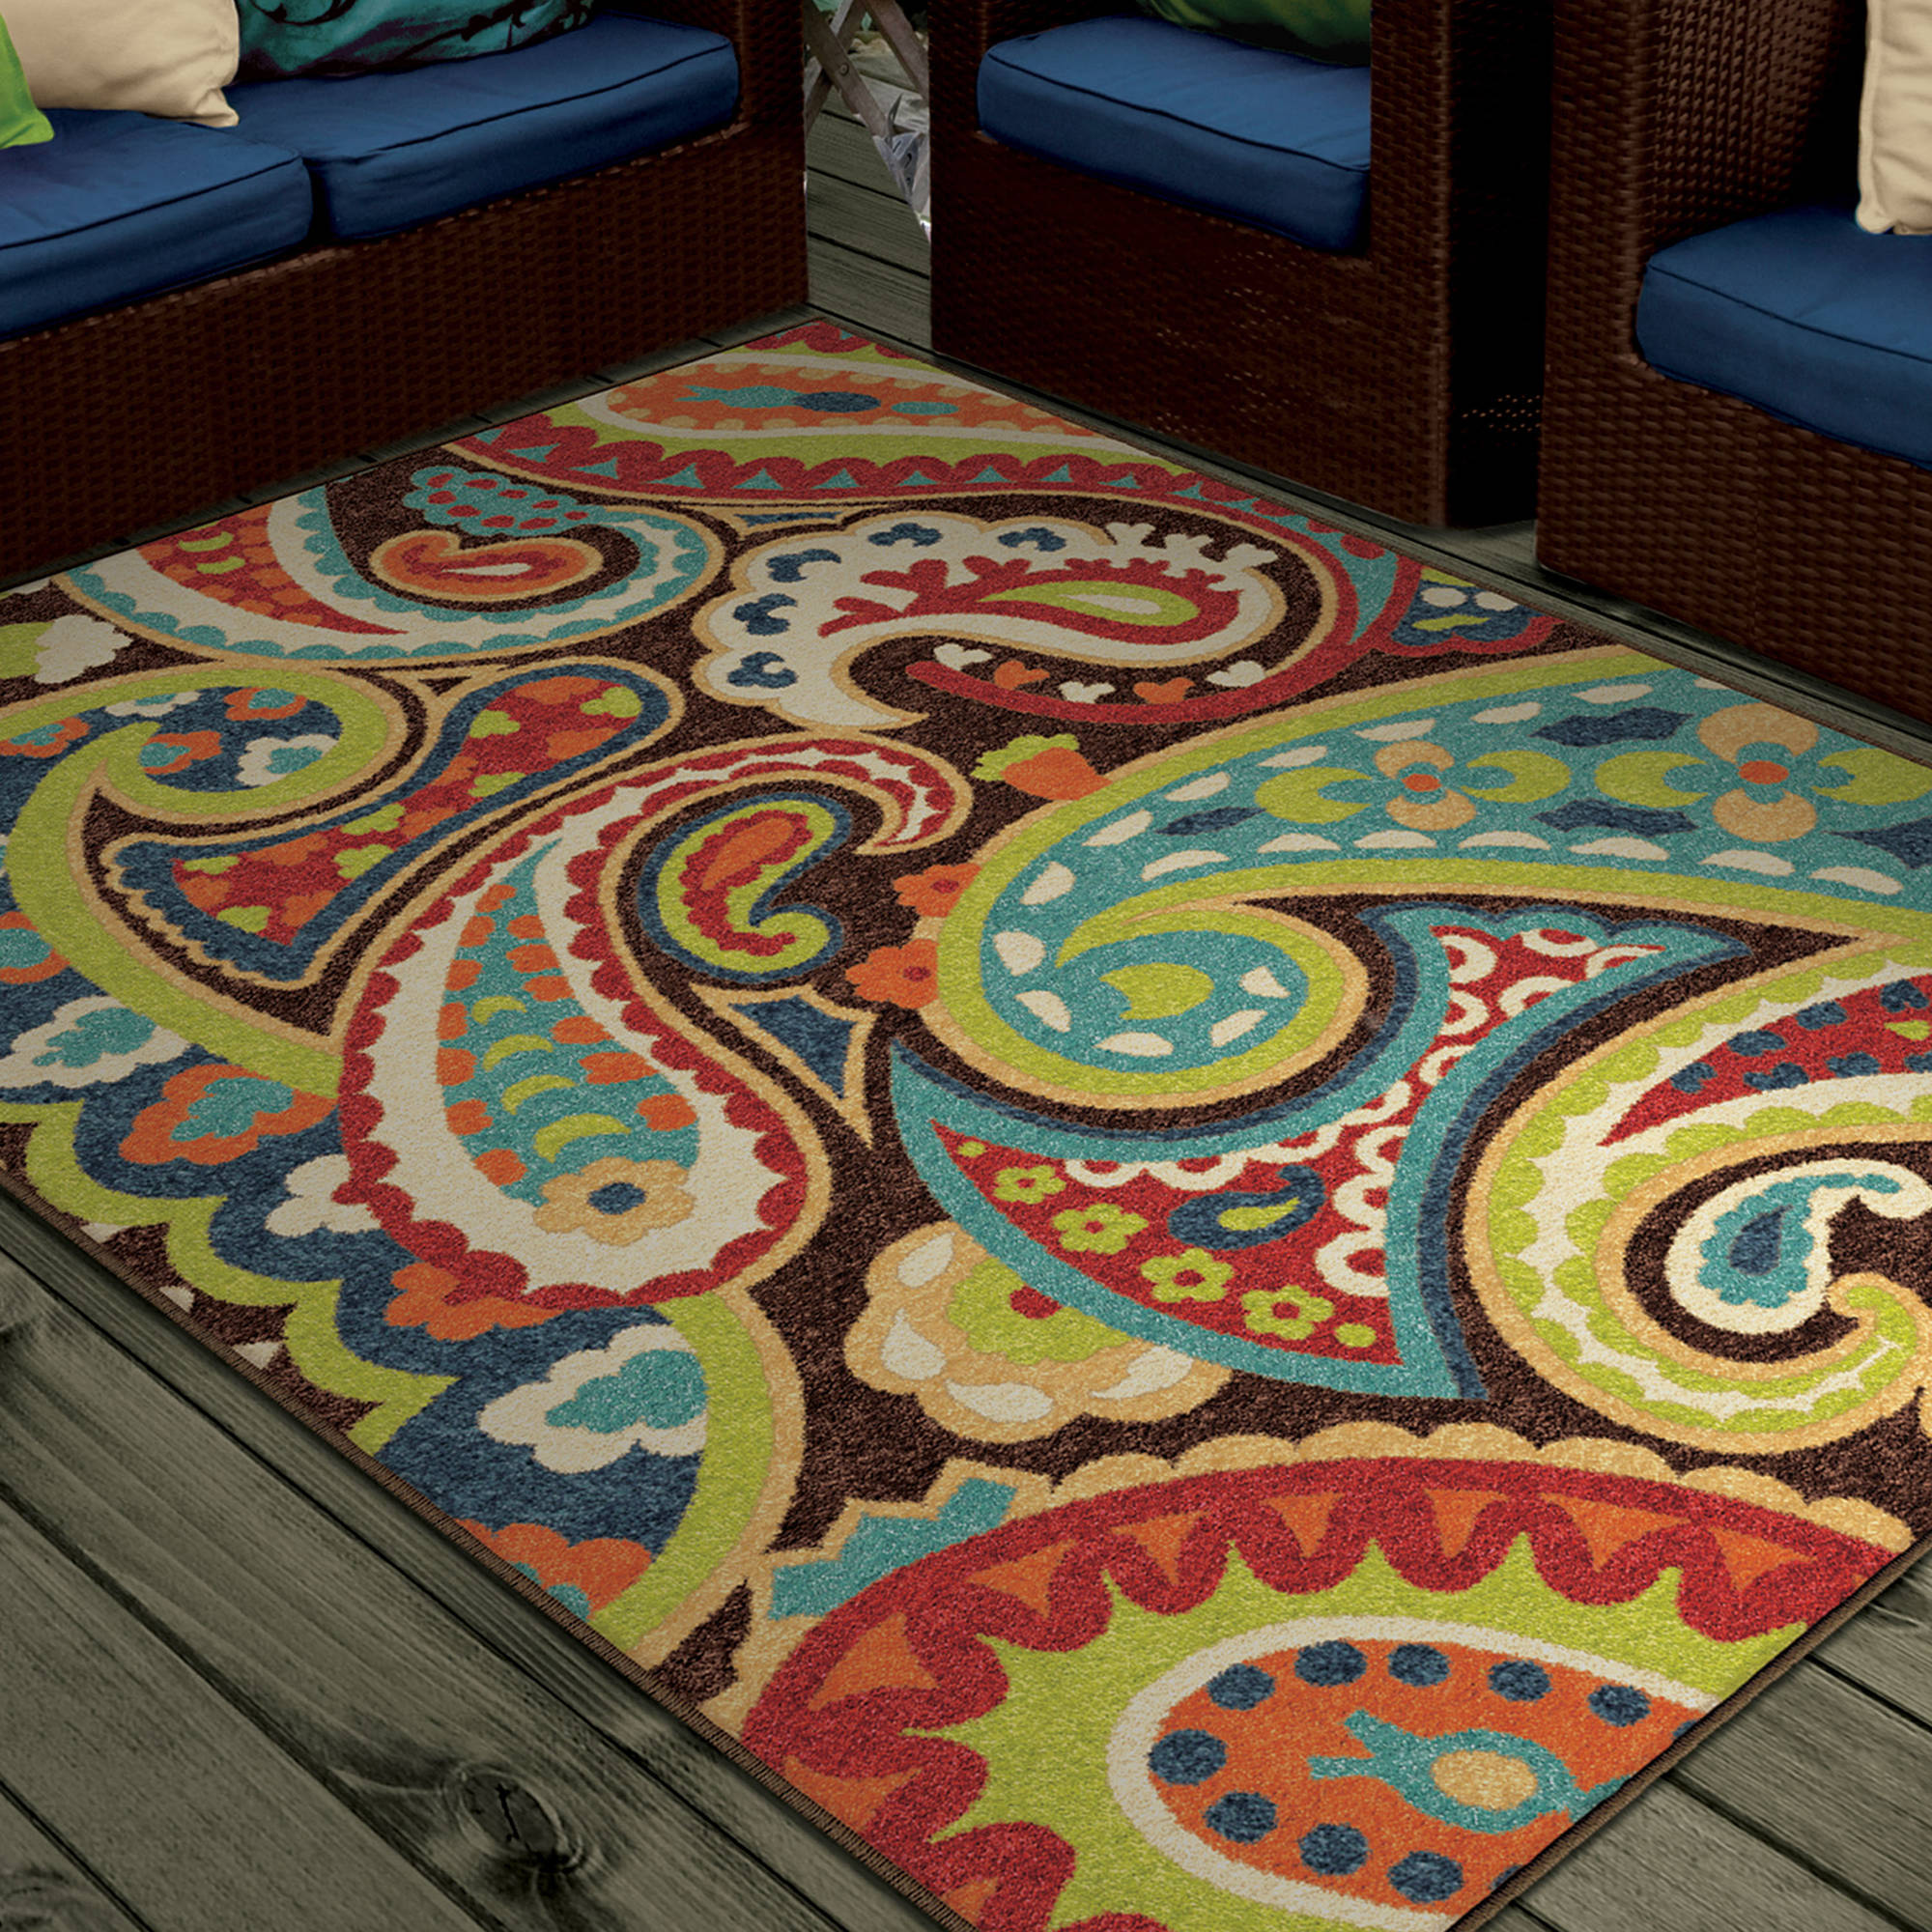 Teal Color Area Rugs Orian Rugs Bright Colors Paisley Monteray Area Rug Or Runner